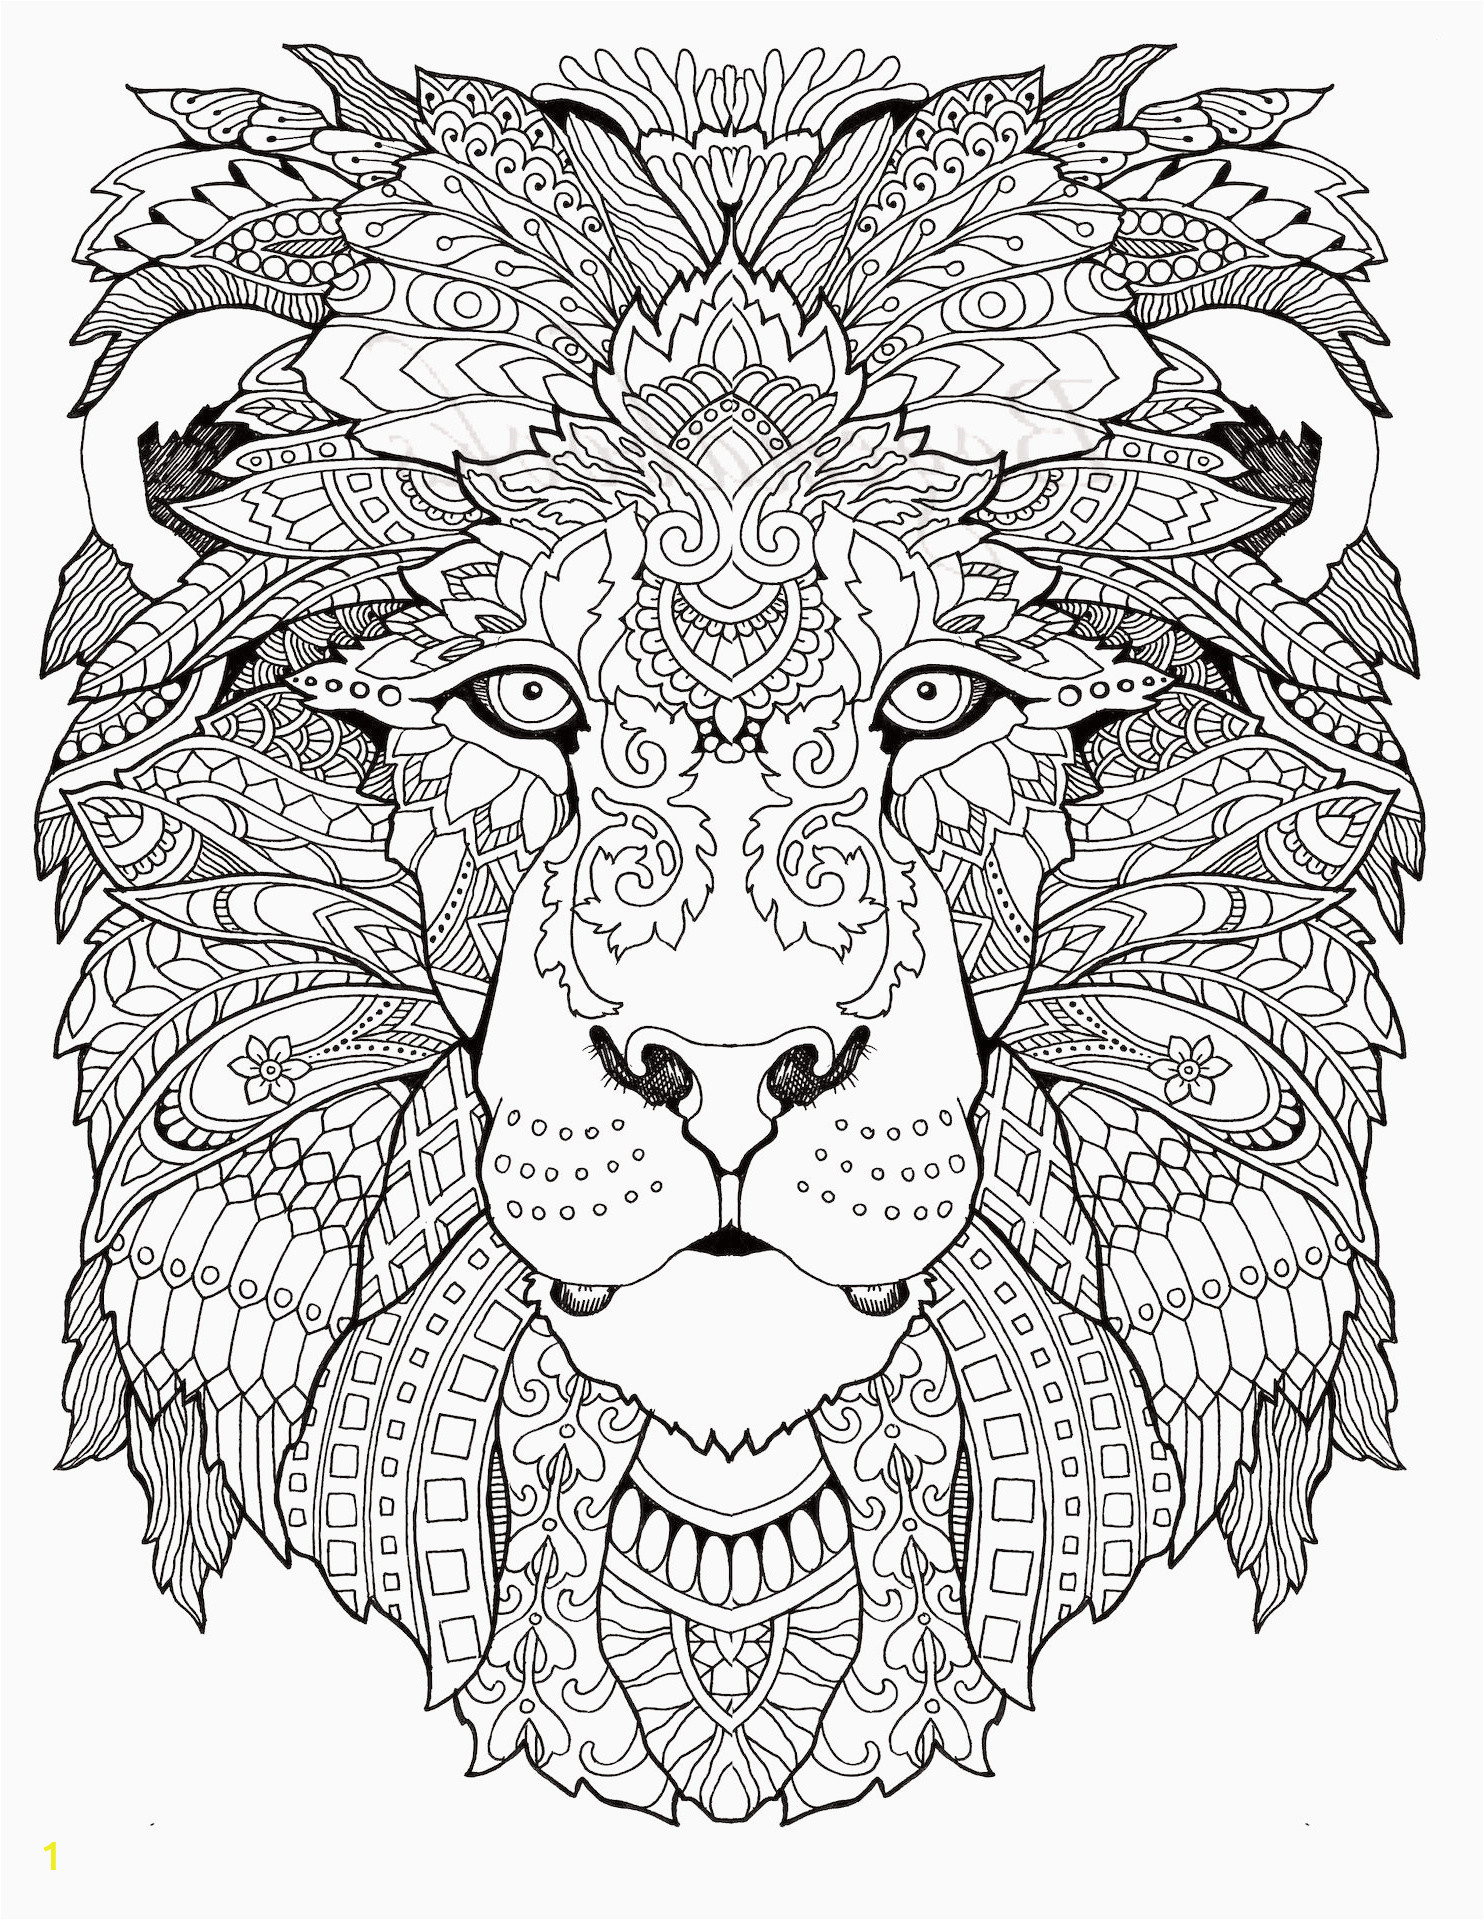 Advent Kids Coloring Pages 22 Inspirational S Printable Mandala Coloring Sheet